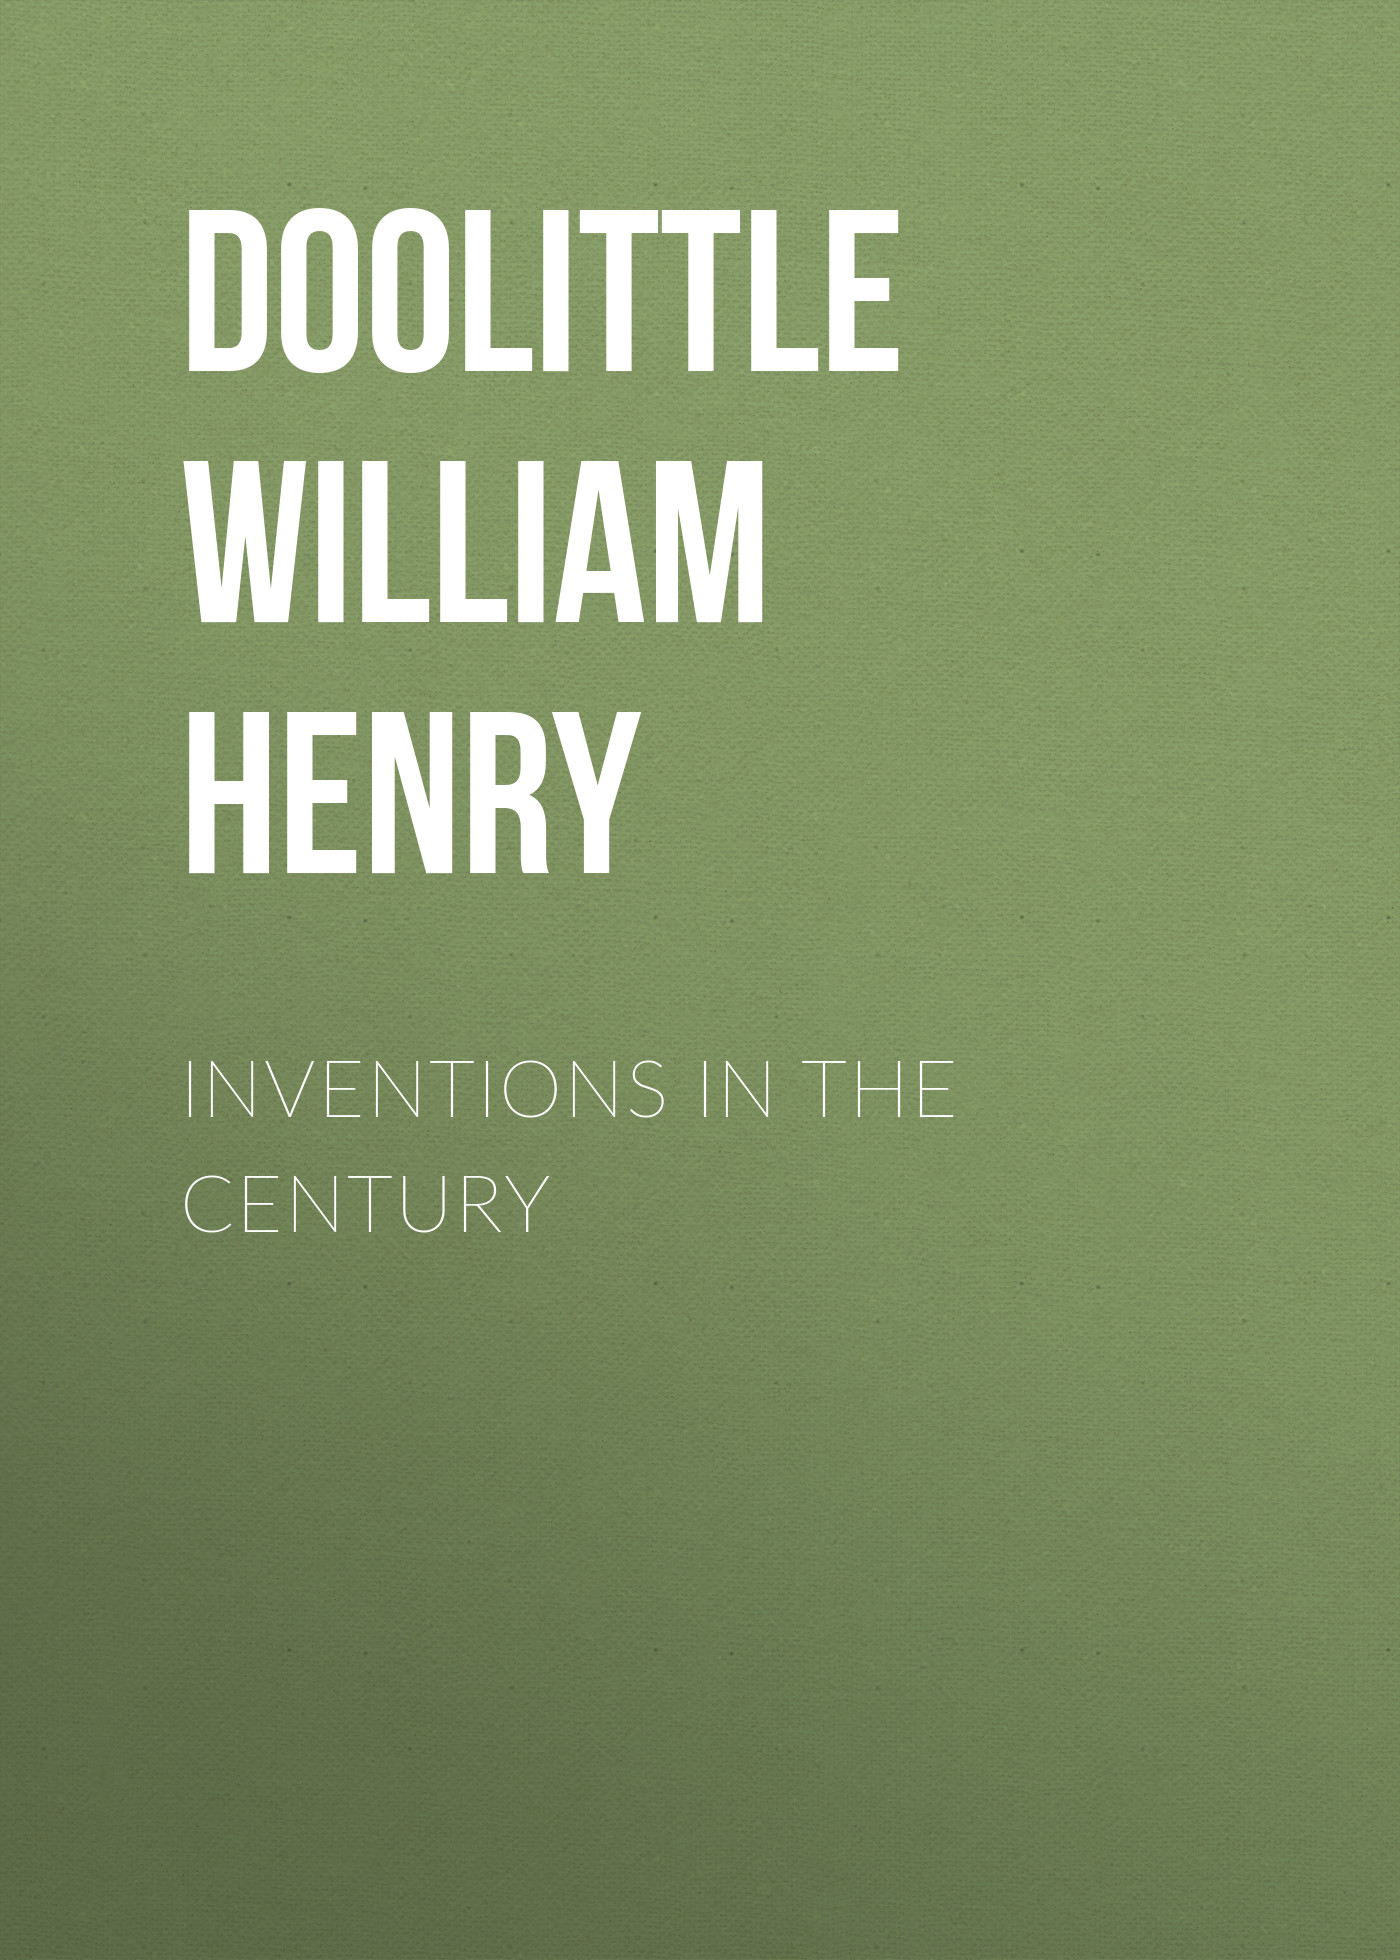 Doolittle William Henry Inventions in the Century frith henry in the yellow sea